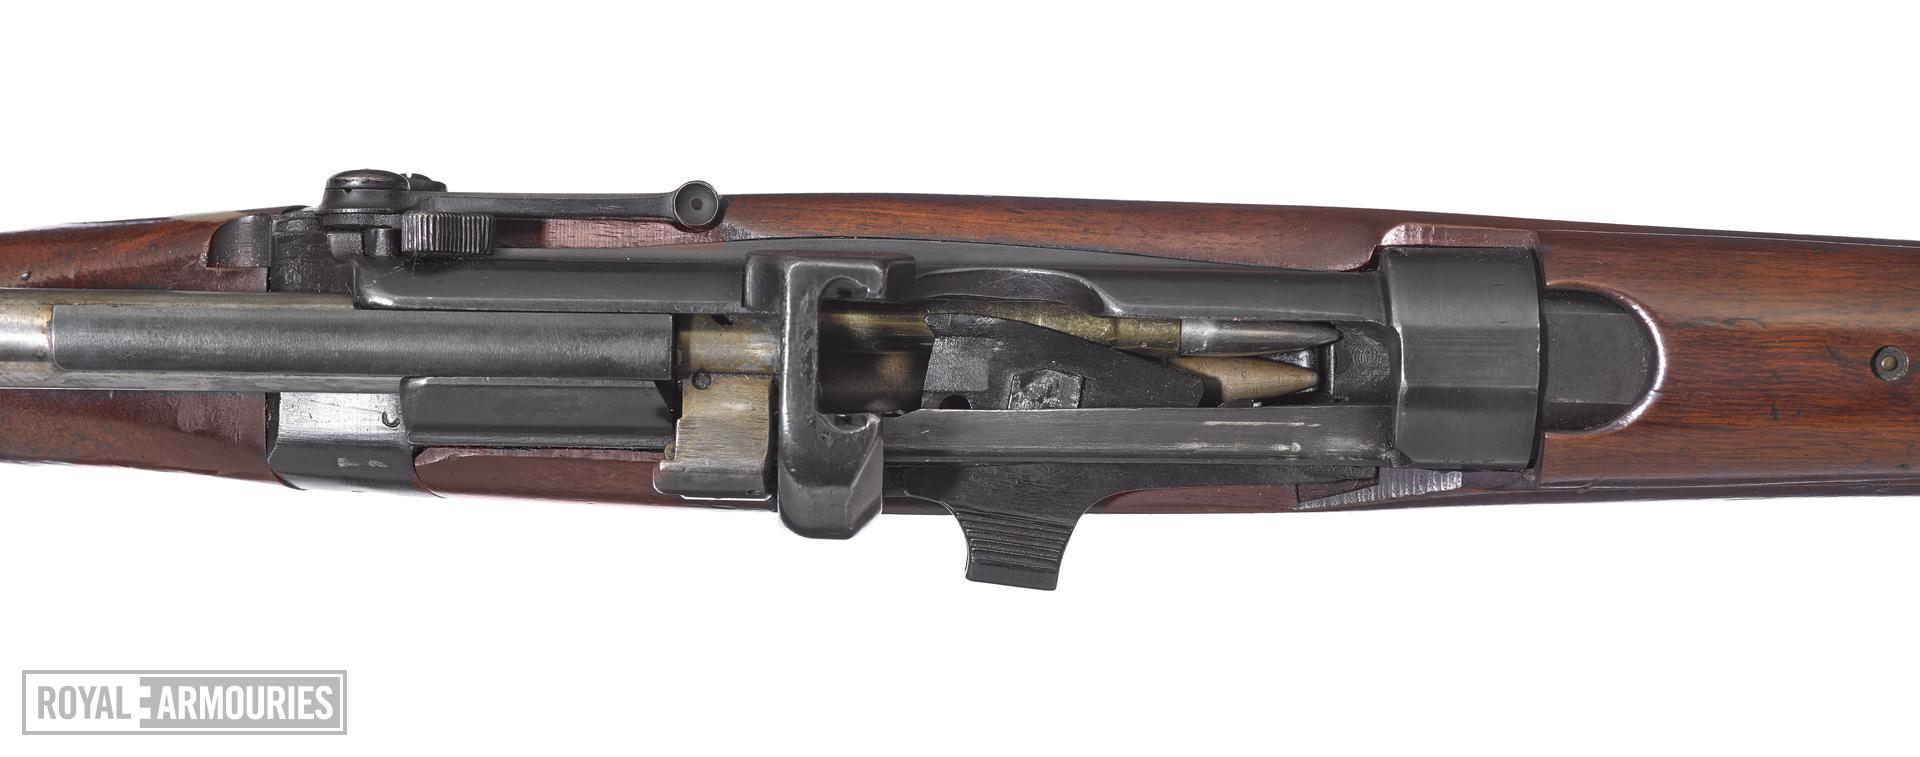 Small Magazine Lee Enfield Mk III centrefire bolt action rifle (SMLE Mk III), Enfield, Britain, about 1907